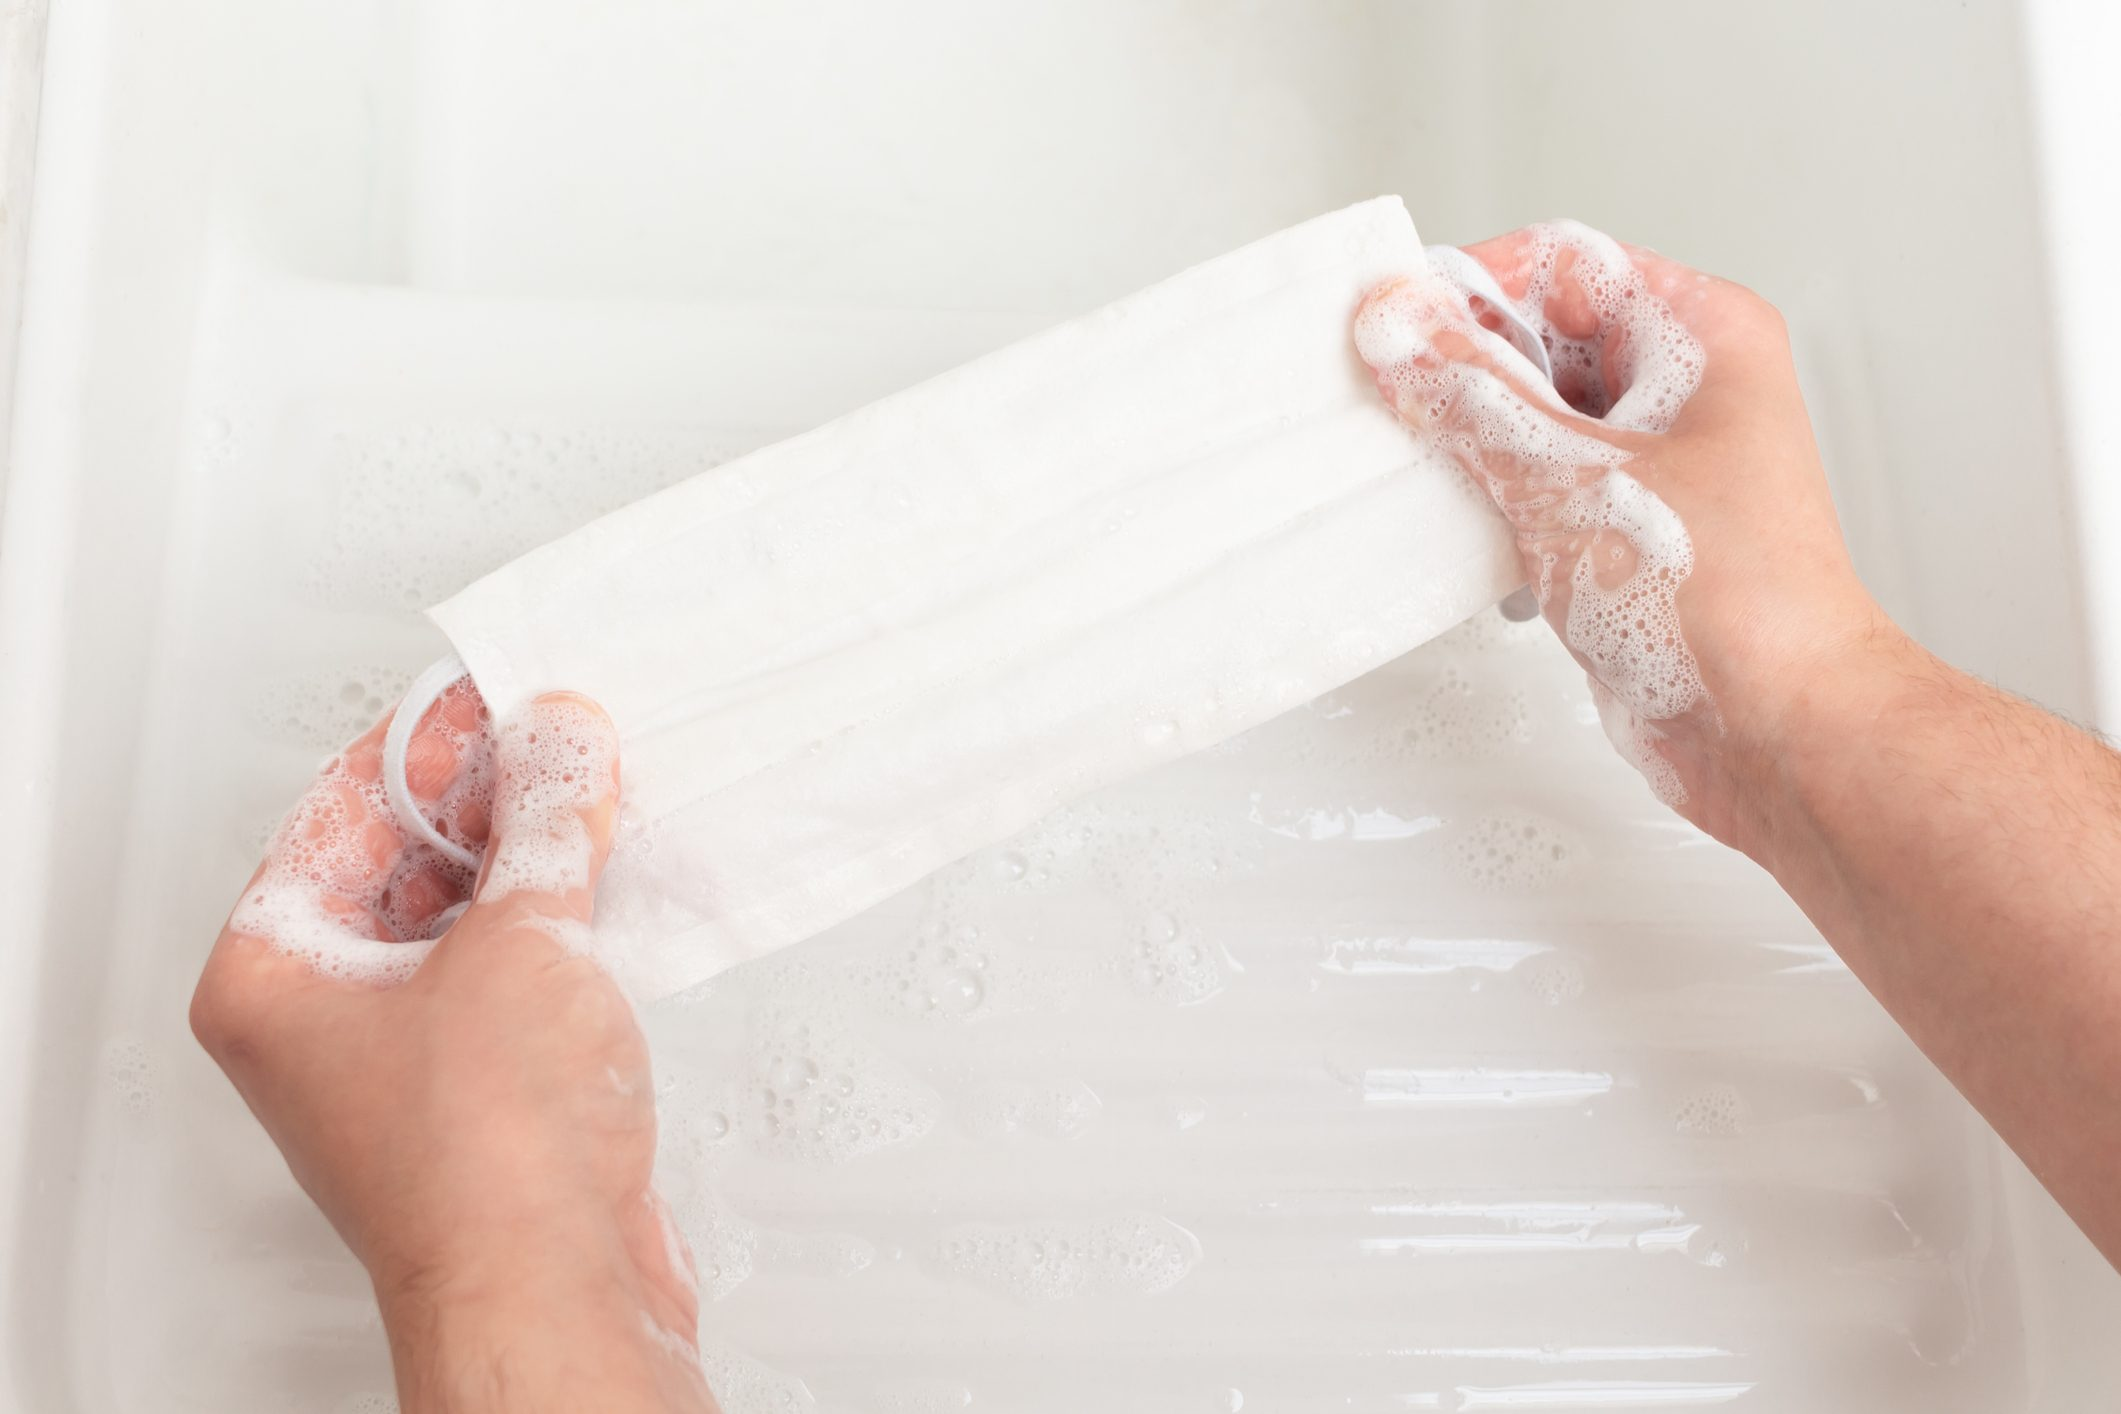 Woman's hands washing a reusable cloth face mask with soap in a white porcelain sink